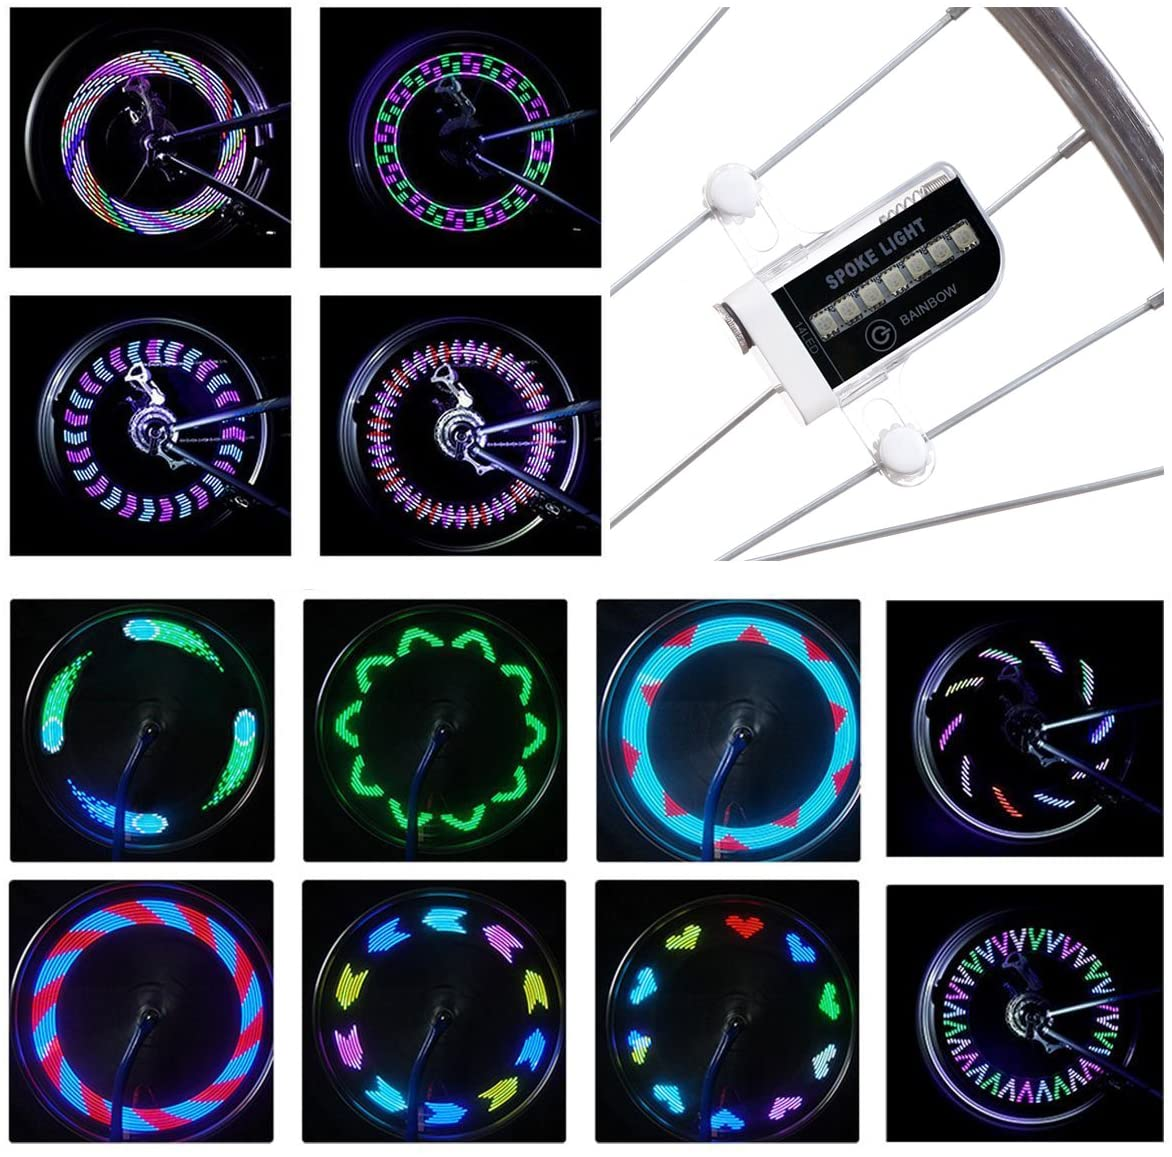 DAWAY LED Bike Spoke Lights – A12 Waterproof Cool Bicycle Wheel Light, Safety Tire Lights for Kids Adults, Very Bright, Auto Manual Dual Switch, 30 Pattern, Include Battery, 6 Month Warranty